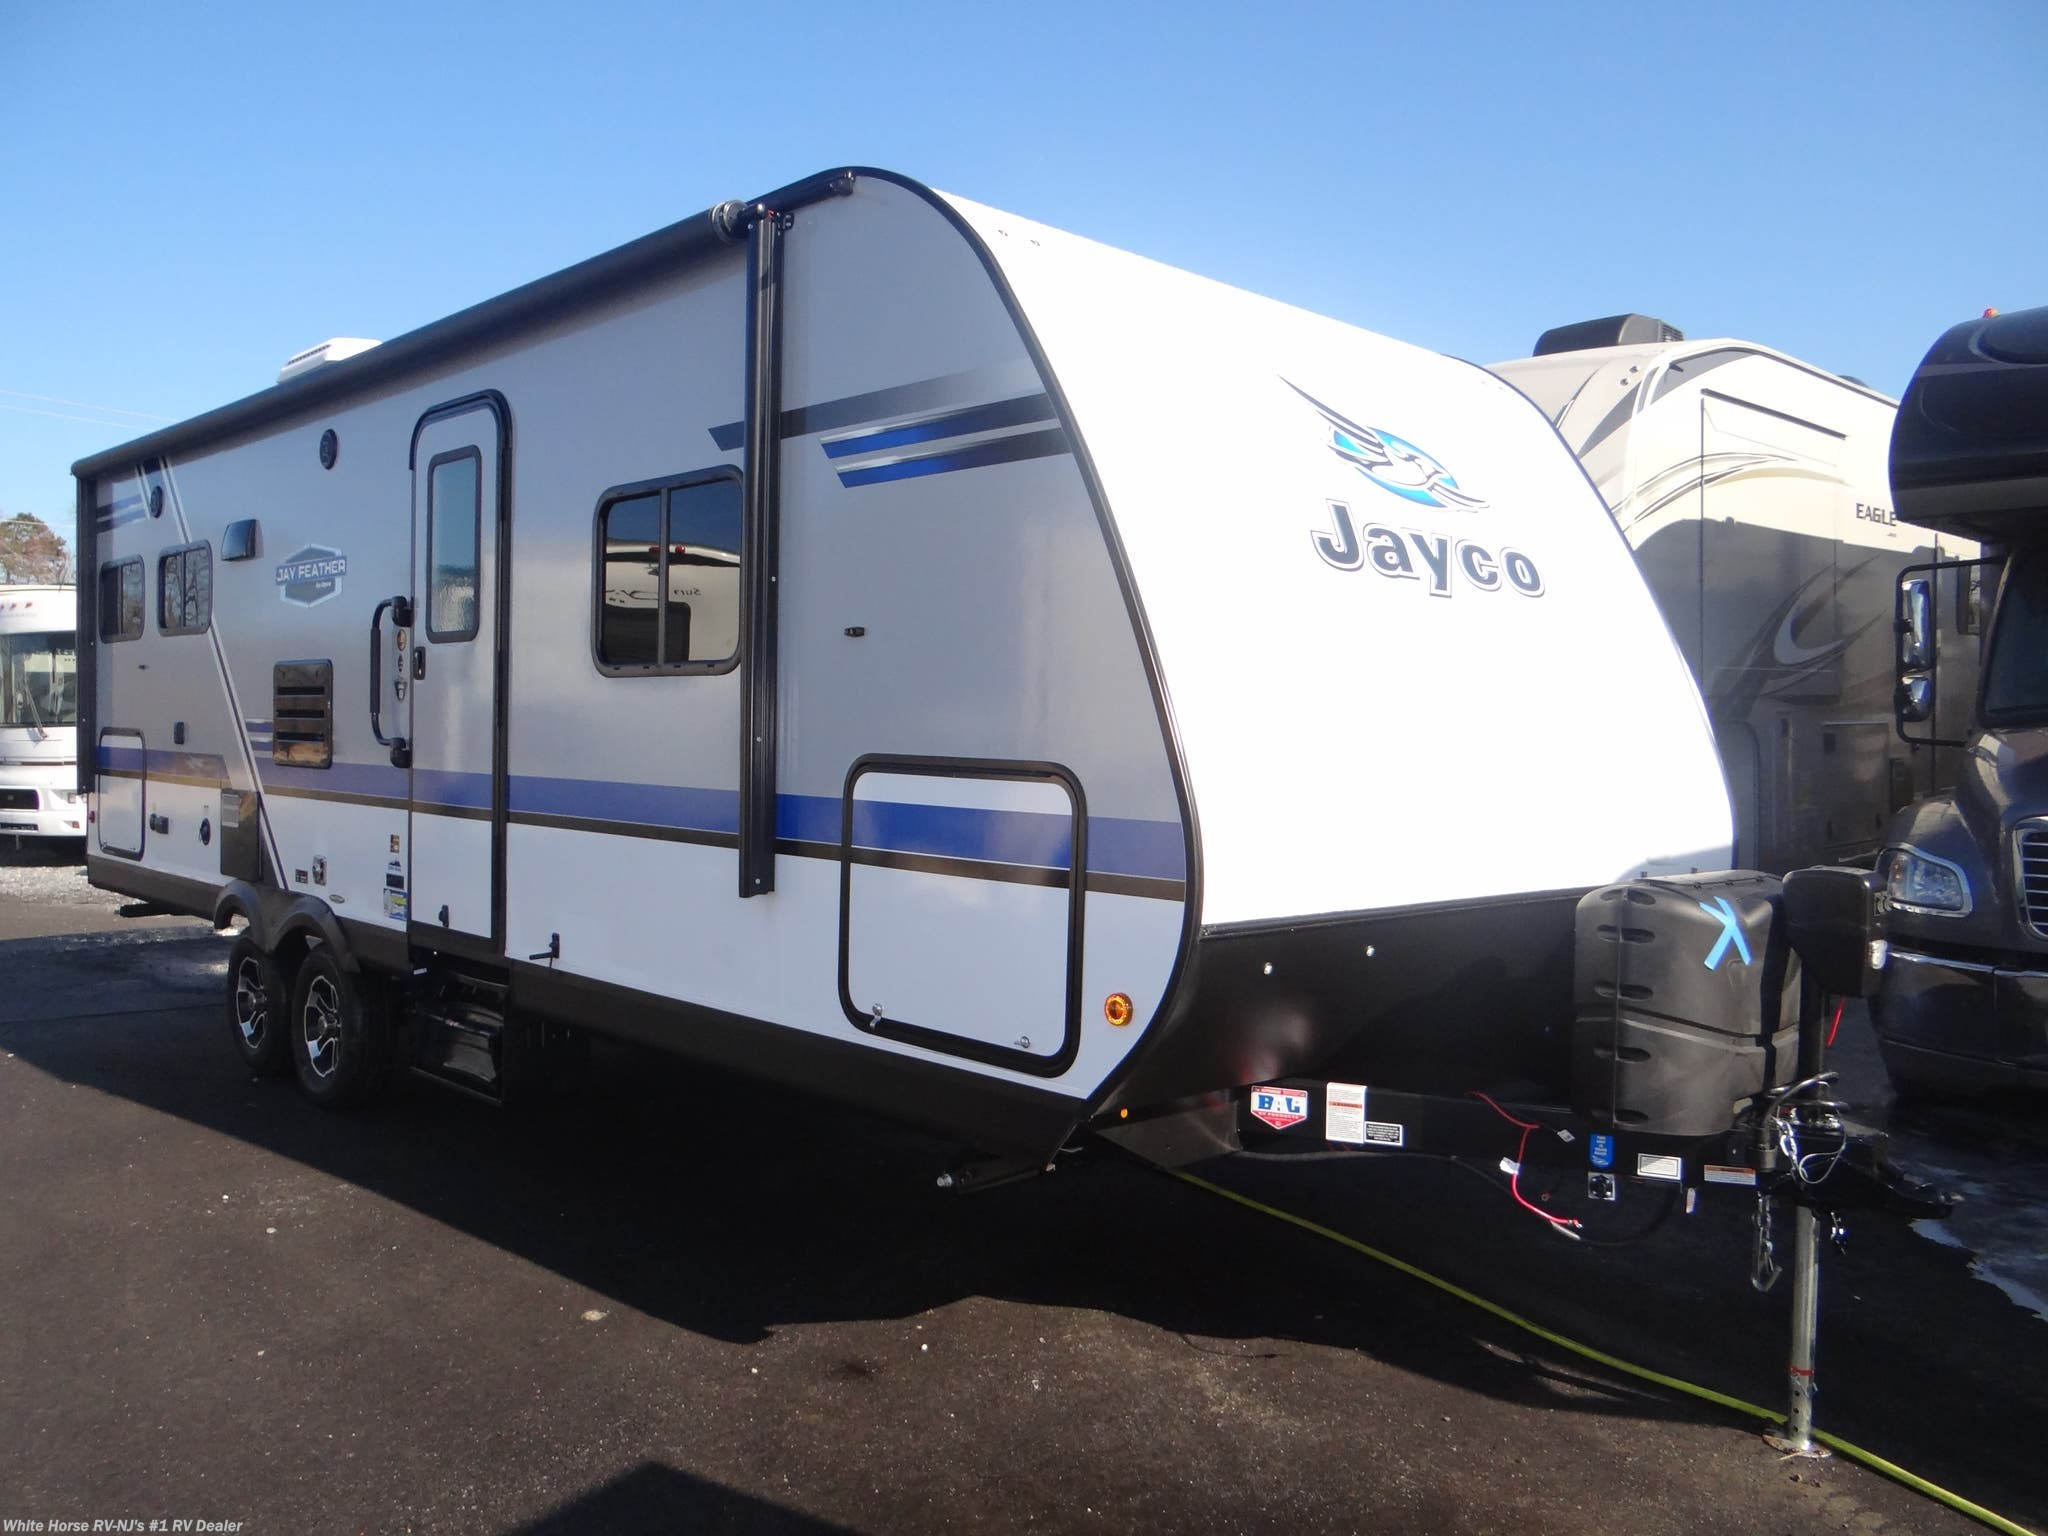 Admirable 2019 Jayco Rv Jay Feather 24Rl Dinette Slide Front Queen Rear Sofa Bed For Sale In Williamstown Nj 08094 Jf12377 Spiritservingveterans Wood Chair Design Ideas Spiritservingveteransorg